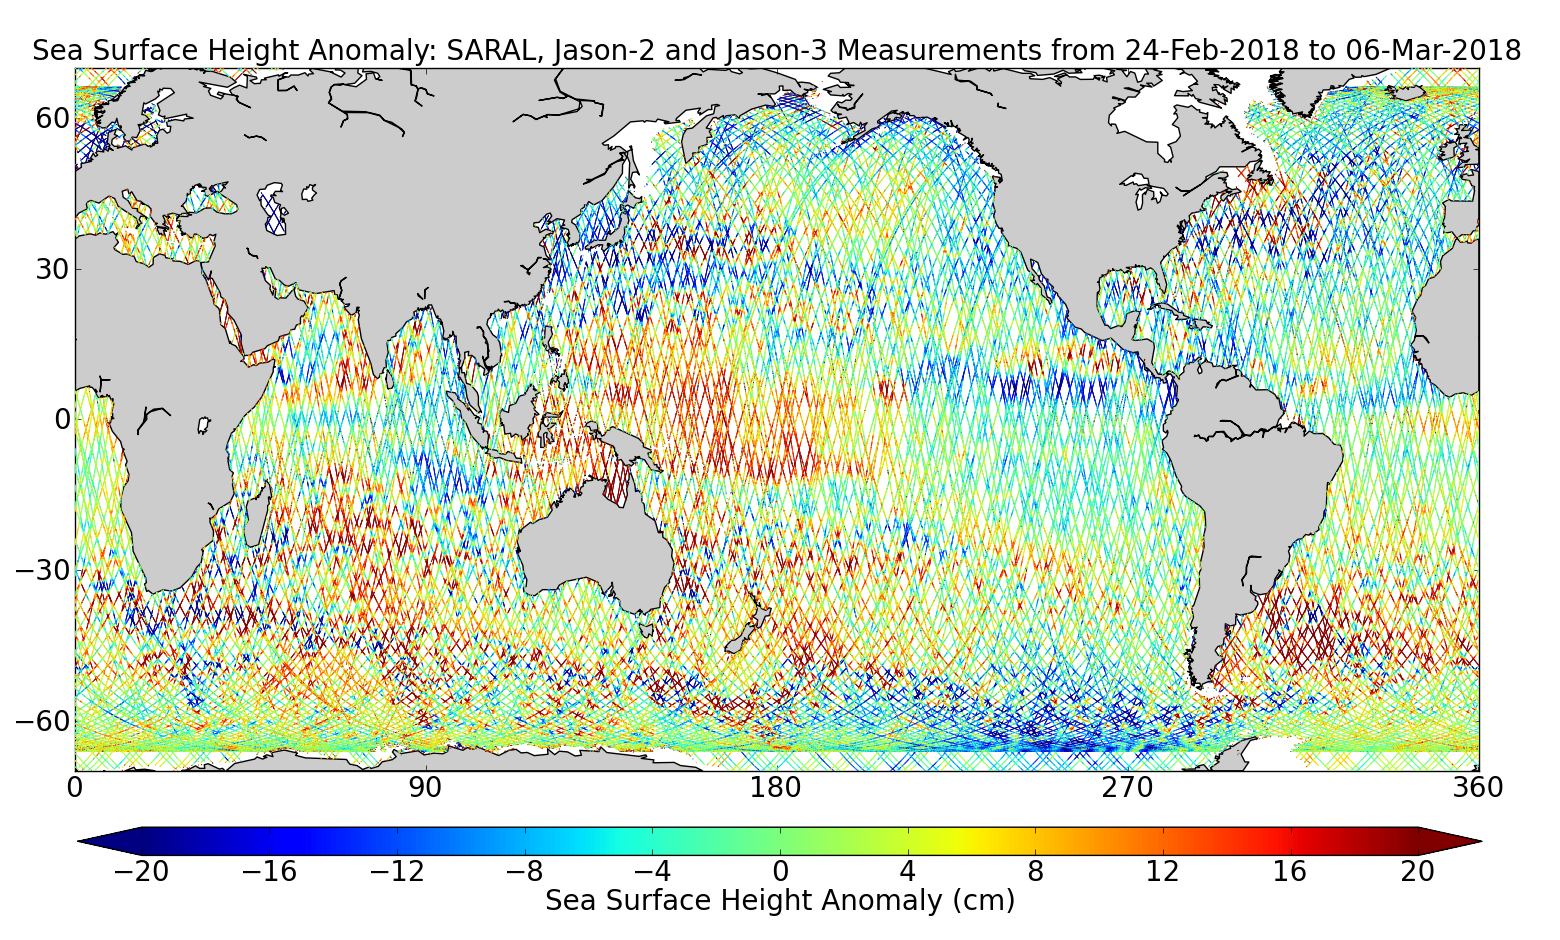 Sea Surface Height Anomaly: SARAL, Jason-2 and Jason-3 Measurements from 24-Feb-2018 to 06-Mar-2018